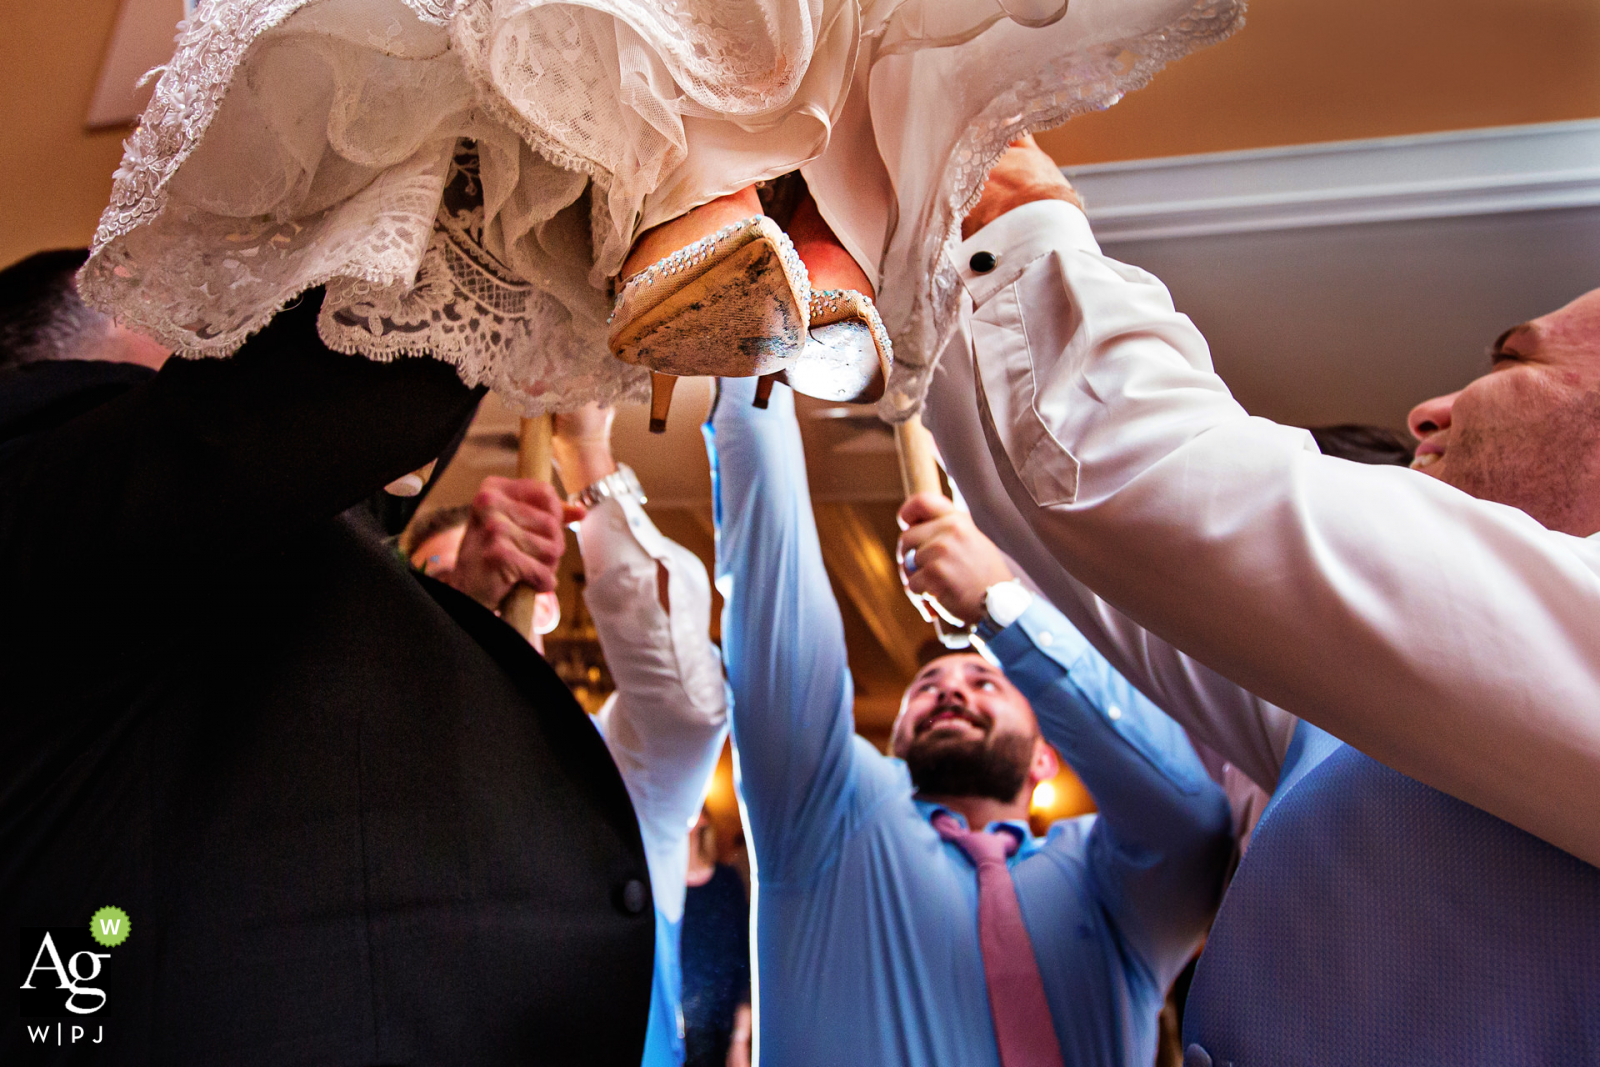 Bear Brook Valley New Jersey Wedding Venue Photo | The bride up in the air on chair